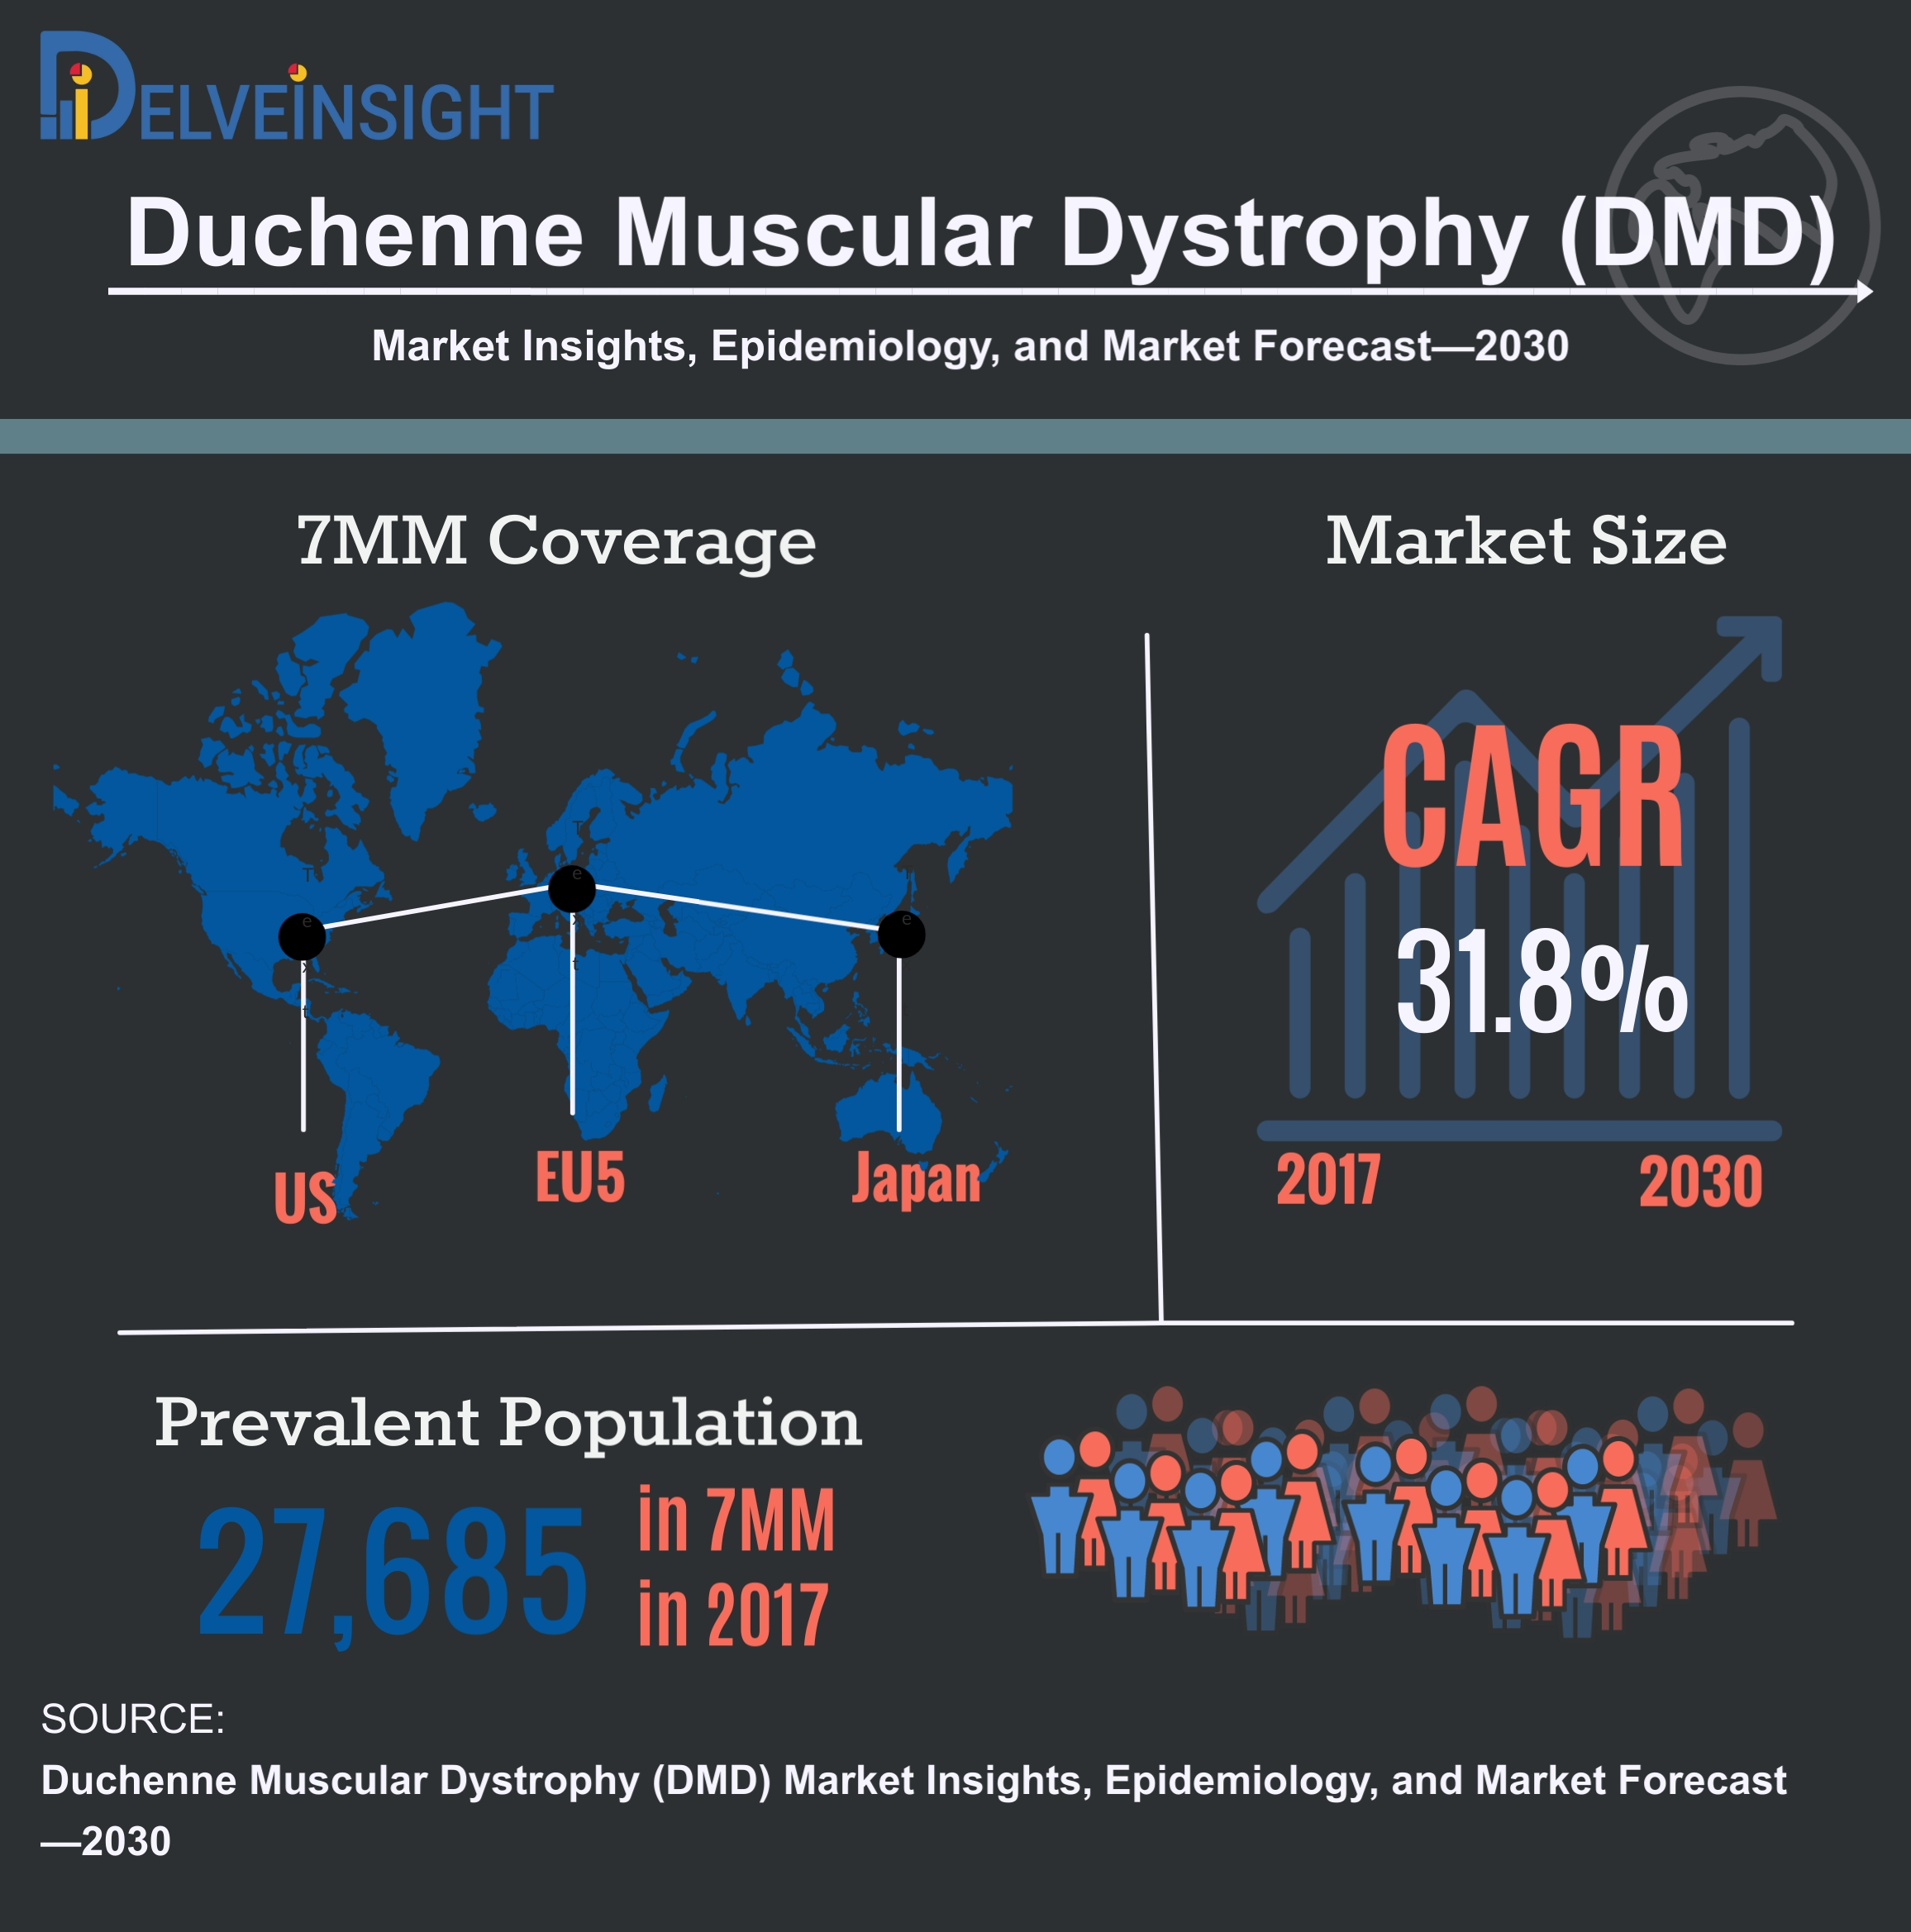 Duchenne Muscular Dystrophy Pipeline Insights: Upcoming therapies that shall drive the market ahead